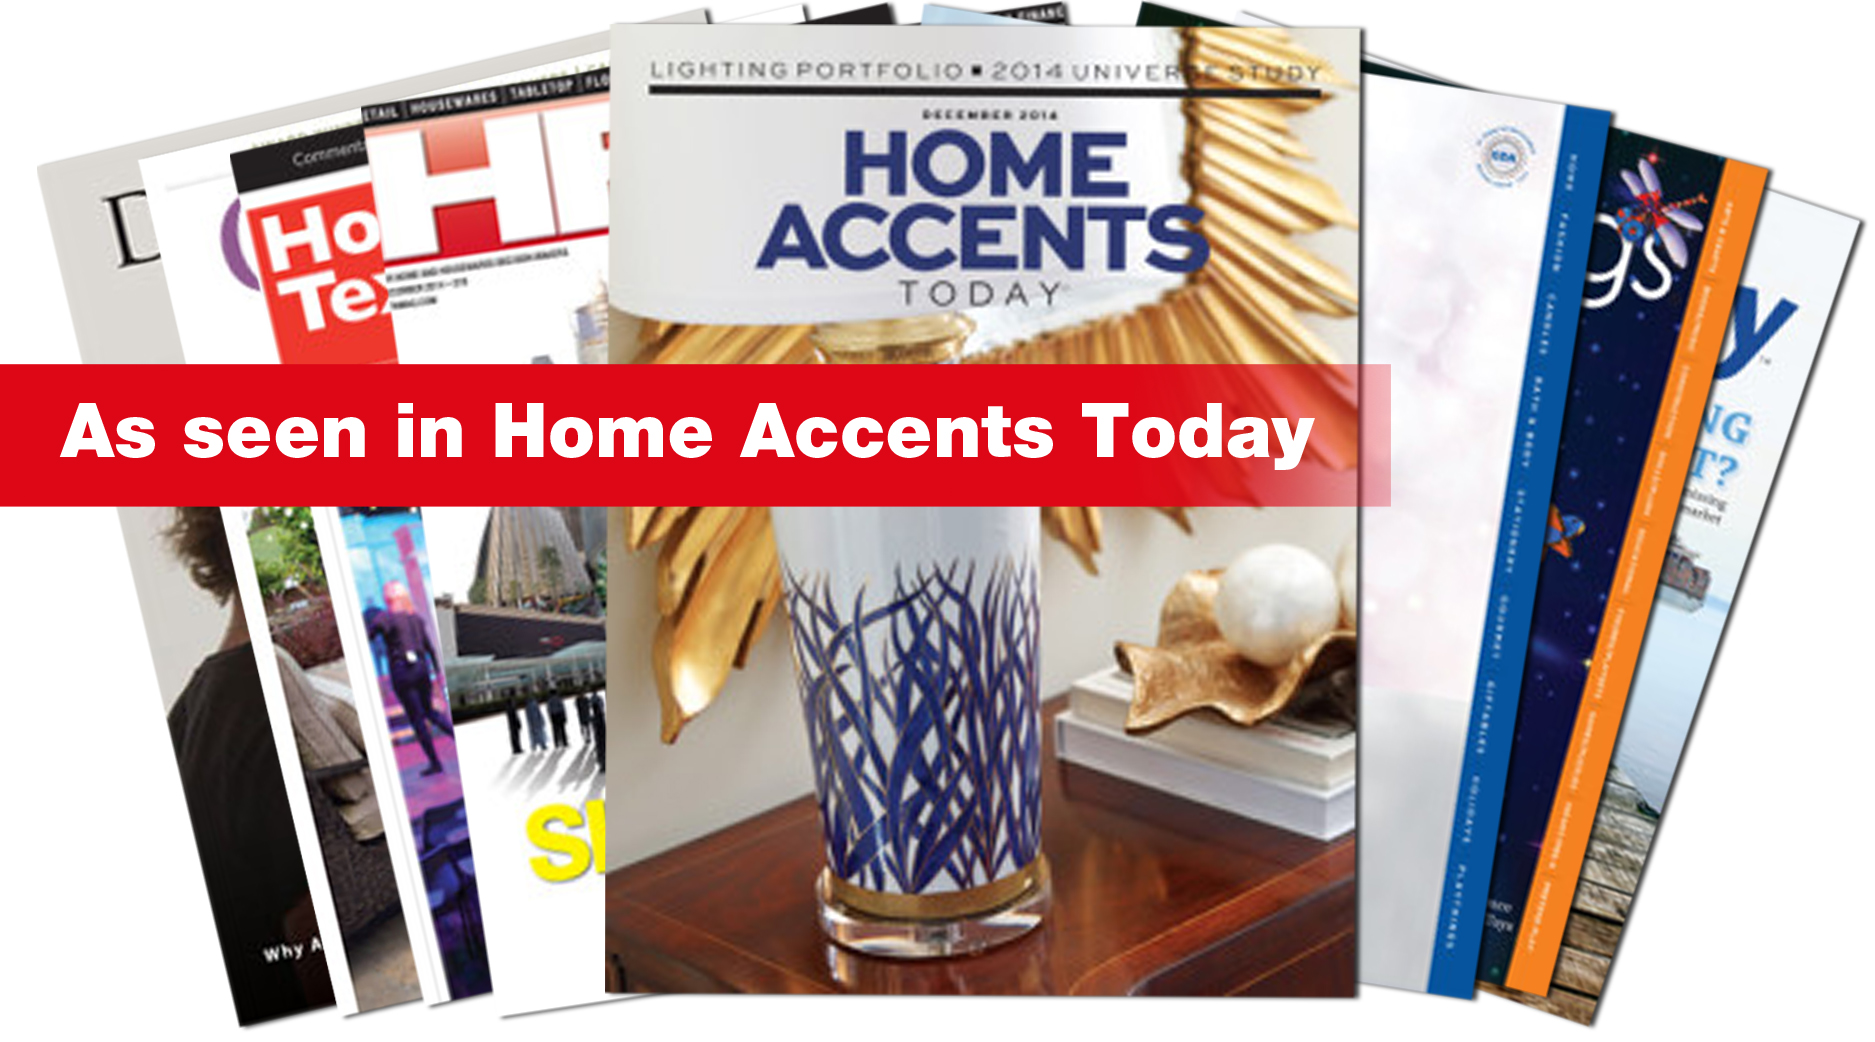 As seen in Home Accents Today